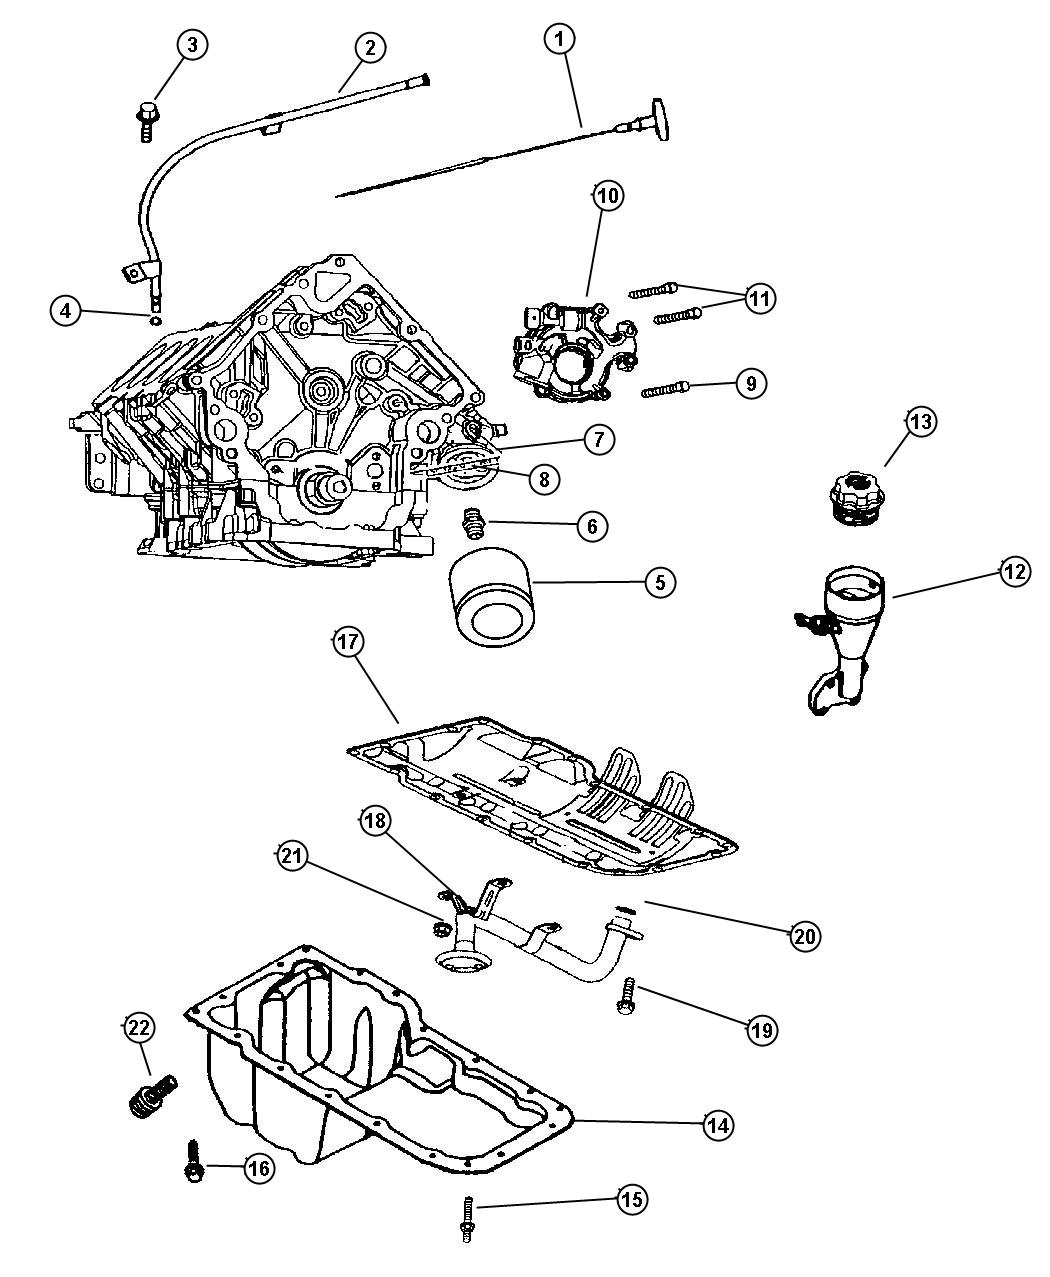 426 Hemi Engine Diagram Get Free Image About Wiring Distributor Dodge Magnum